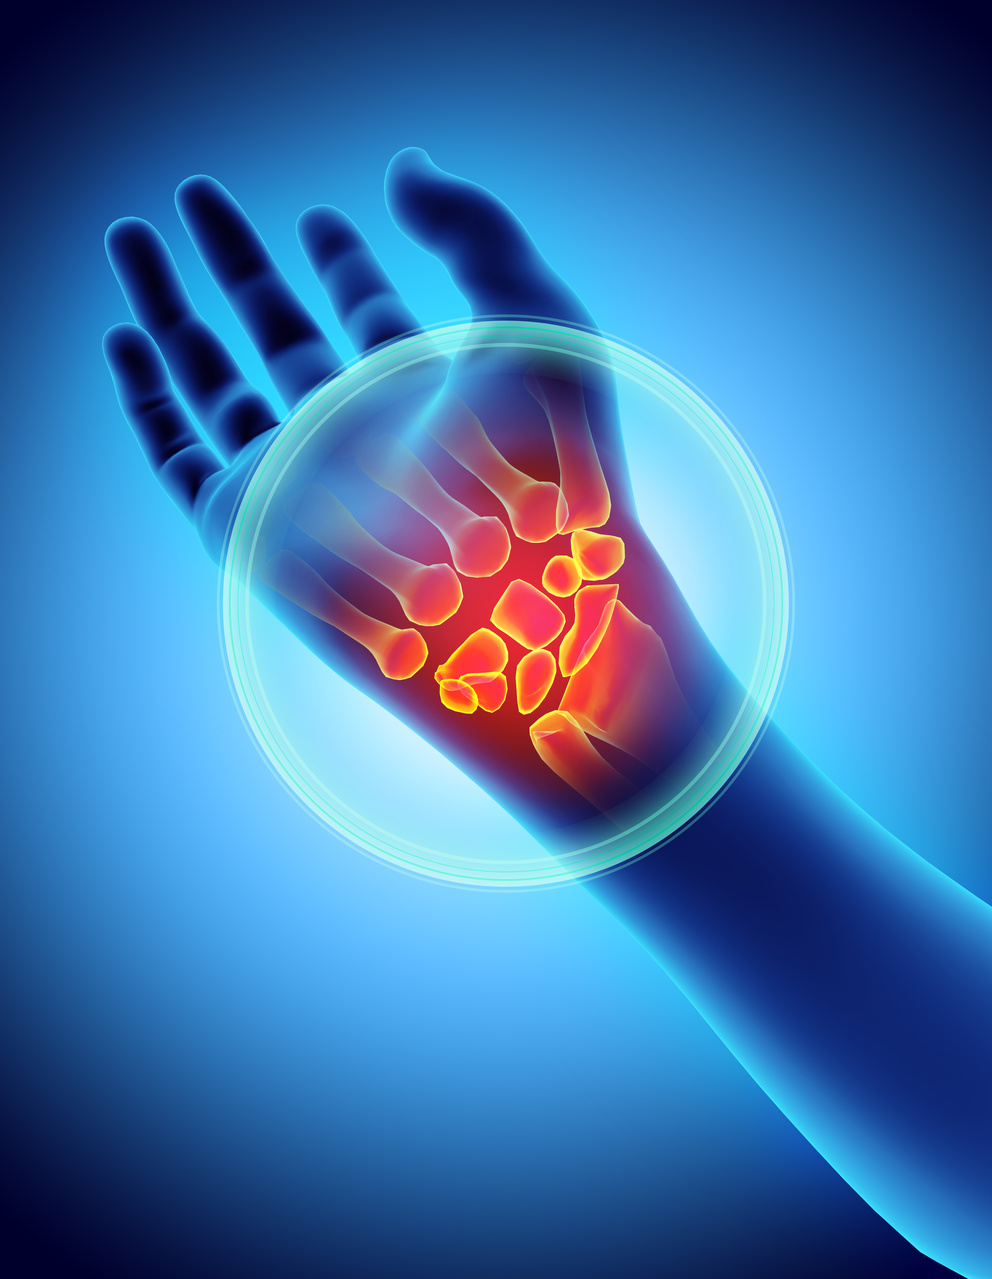 Study Clarifies New Understandings About Timing of Psoriasis, Arthritis in Patients With PsA